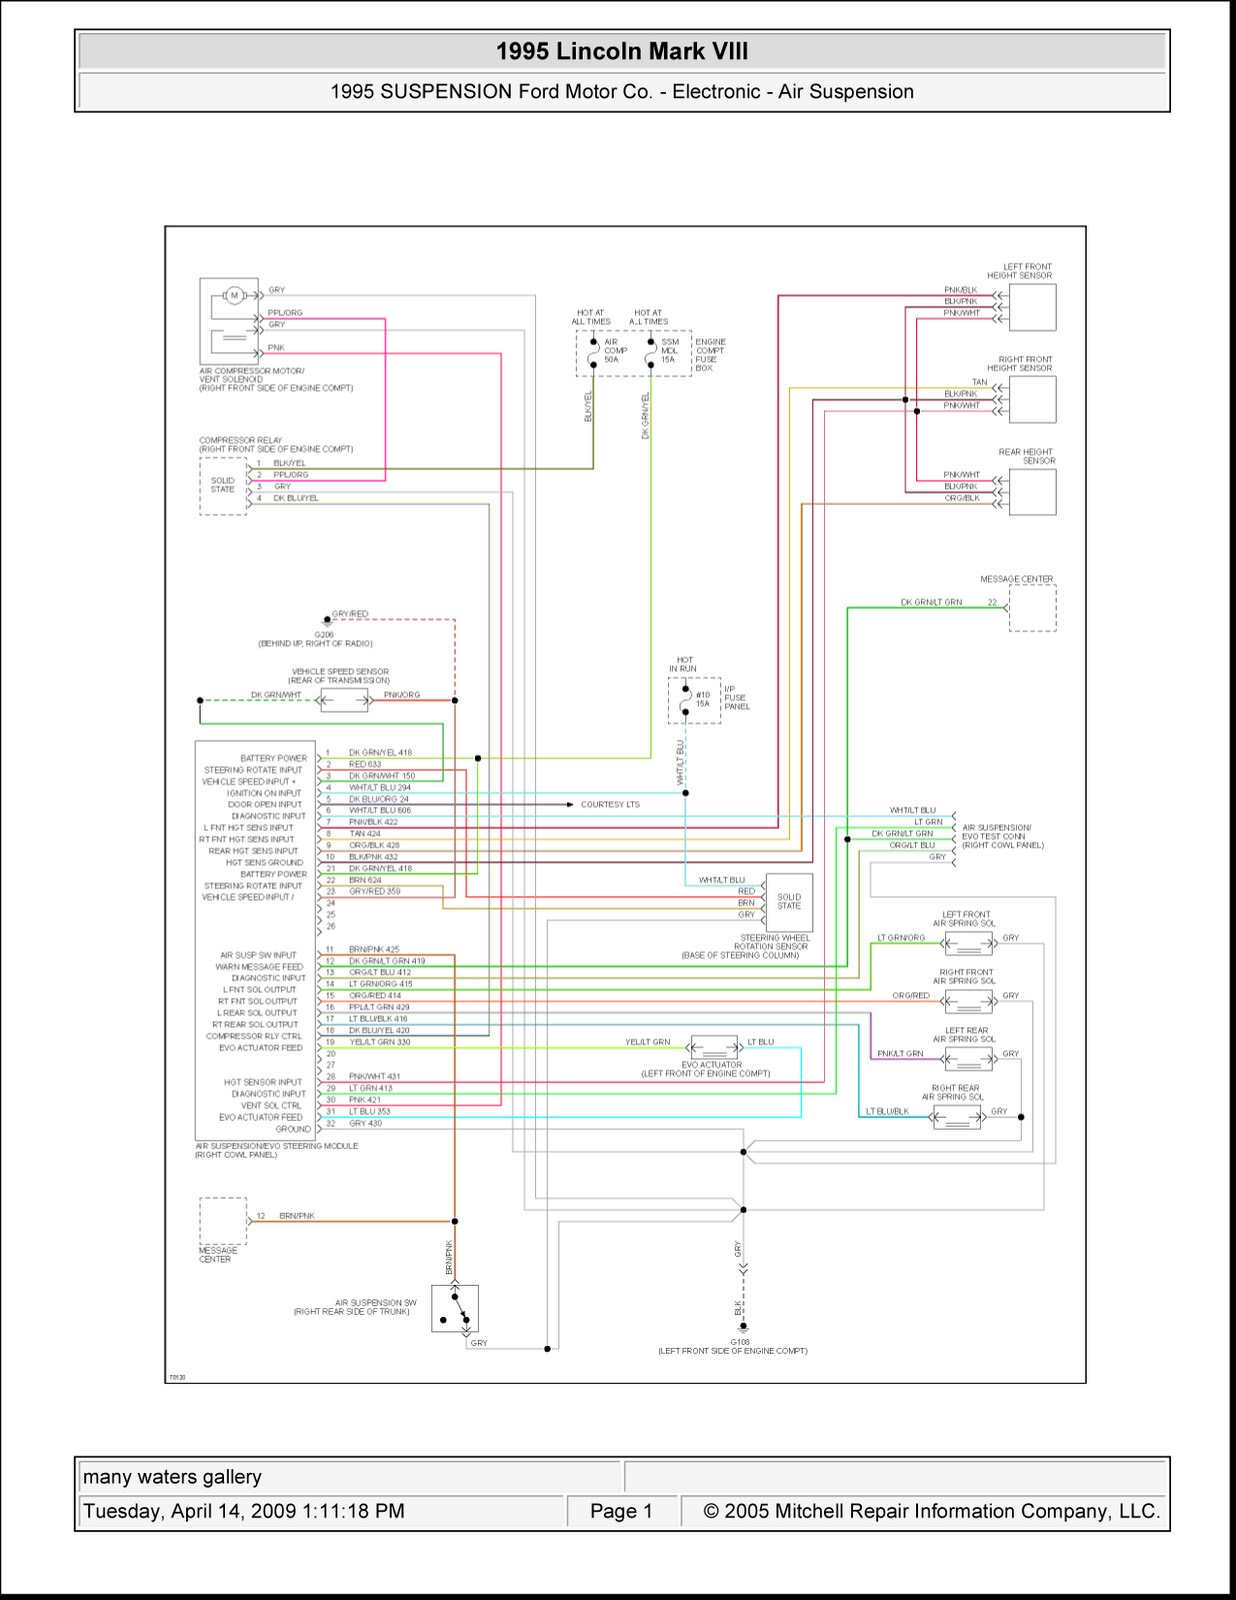 June 2011 Schematic Wiring Diagrams Solutions 1989 Lincoln Mark Vii Diagram 1995 Viii Electronic Air Suspension